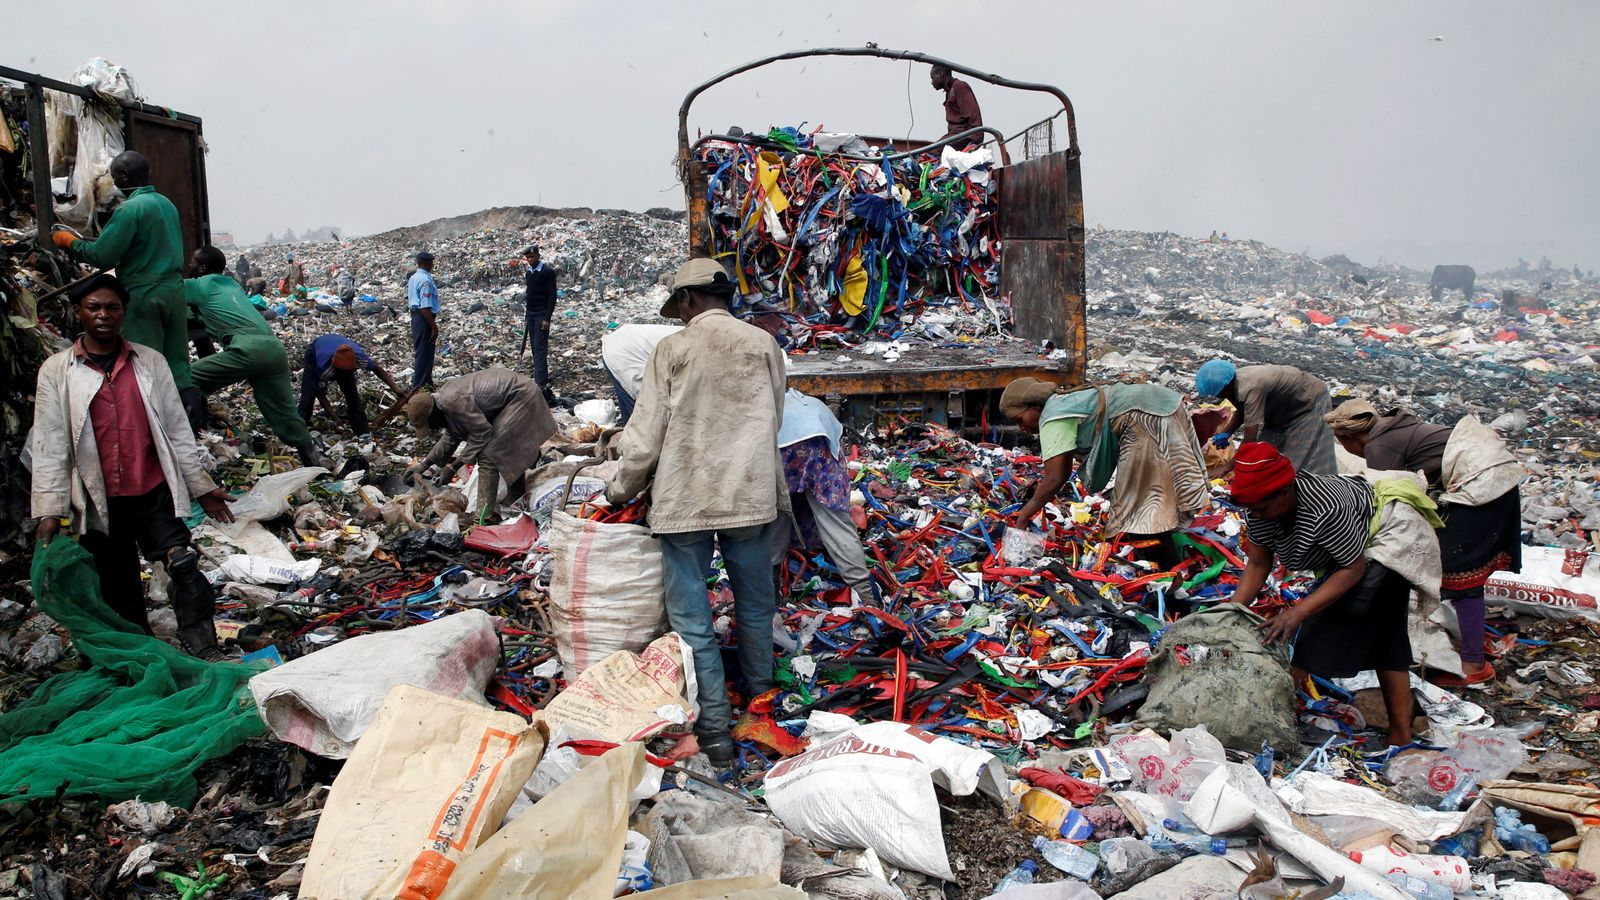 Leather Suppliers Kenya Mail: Kenya Passes World's Toughest Plastic Bag Law In Pollution